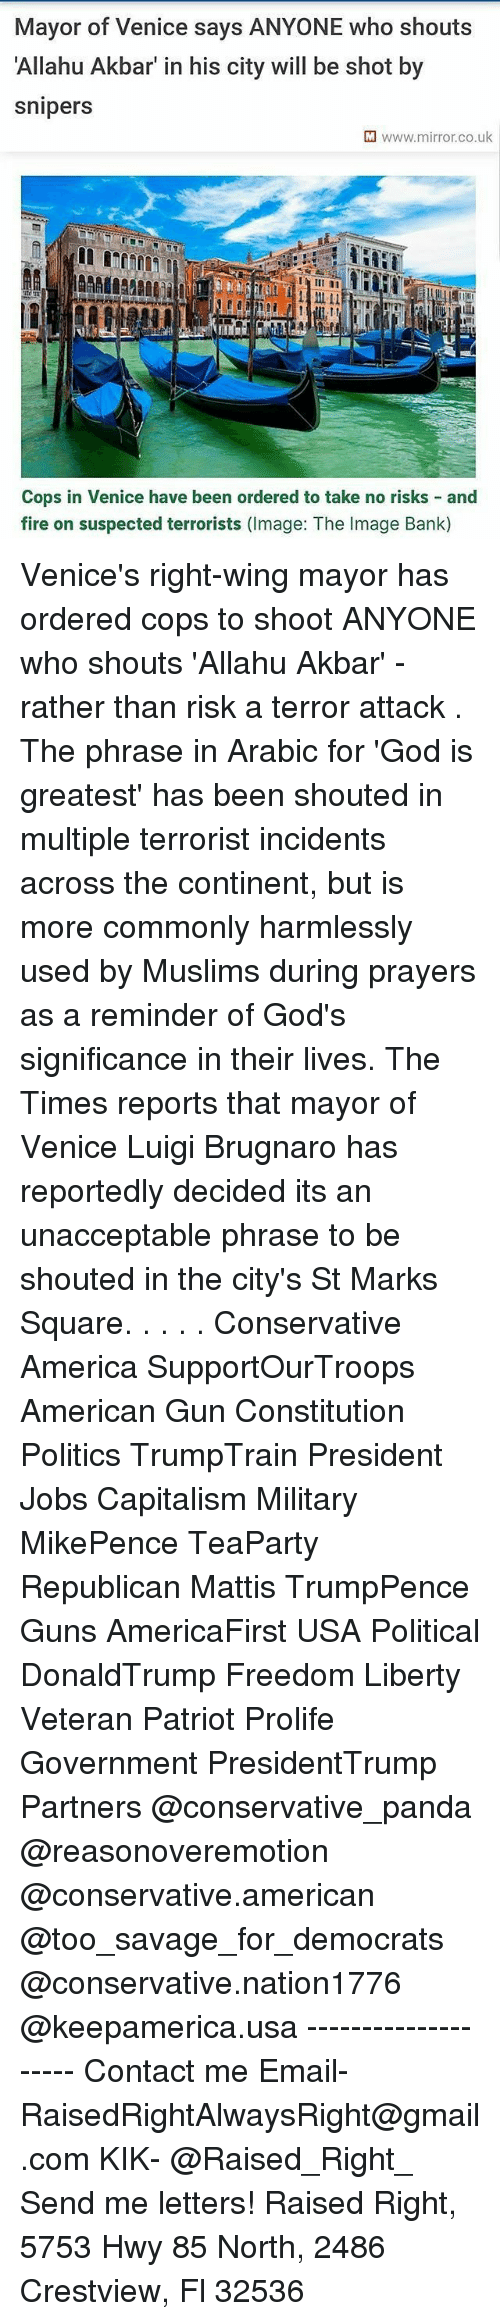 Uks: Mayor of Venice says ANYONE who shouts  Allahu Akbar' in his city will be shot by  snipers  M www.mirror.co.uk  Cops in Venice have been ordered to take no risks and  fire on suspected terrorists (Image: The Image Bank) Venice's right-wing mayor has ordered cops to shoot ANYONE who shouts 'Allahu Akbar' - rather than risk a terror attack . The phrase in Arabic for 'God is greatest' has been shouted in multiple terrorist incidents across the continent, but is more commonly harmlessly used by Muslims during prayers as a reminder of God's significance in their lives. The Times reports that mayor of Venice Luigi Brugnaro has reportedly decided its an unacceptable phrase to be shouted in the city's St Marks Square. . . . . Conservative America SupportOurTroops American Gun Constitution Politics TrumpTrain President Jobs Capitalism Military MikePence TeaParty Republican Mattis TrumpPence Guns AmericaFirst USA Political DonaldTrump Freedom Liberty Veteran Patriot Prolife Government PresidentTrump Partners @conservative_panda @reasonoveremotion @conservative.american @too_savage_for_democrats @conservative.nation1776 @keepamerica.usa -------------------- Contact me ●Email- RaisedRightAlwaysRight@gmail.com ●KIK- @Raised_Right_ ●Send me letters! Raised Right, 5753 Hwy 85 North, 2486 Crestview, Fl 32536